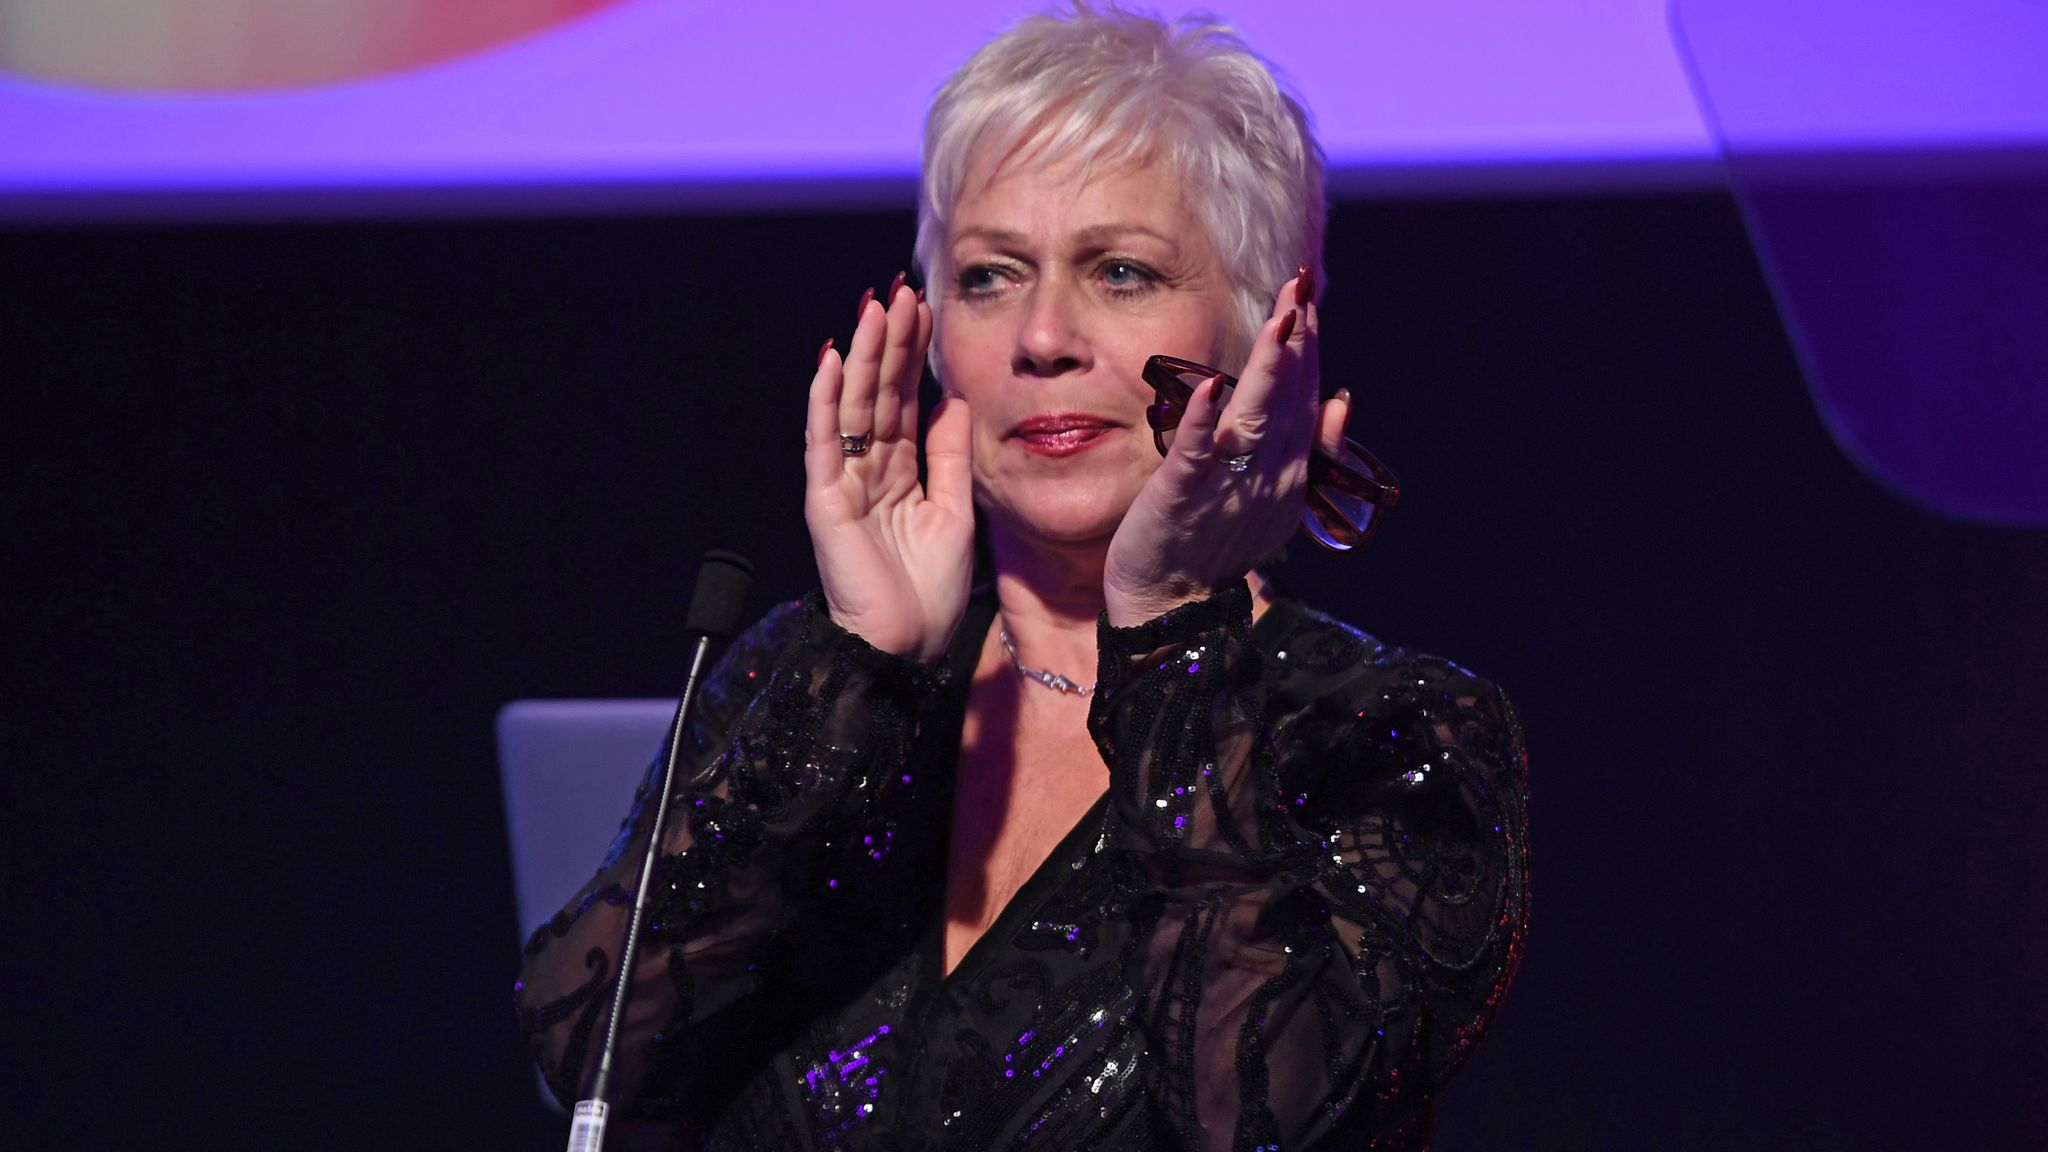 Denise Welch on stage to present the 'Charity' award at the Rainbow Honours 2019 at Madame Tussauds on December 04, 2019 in London, England